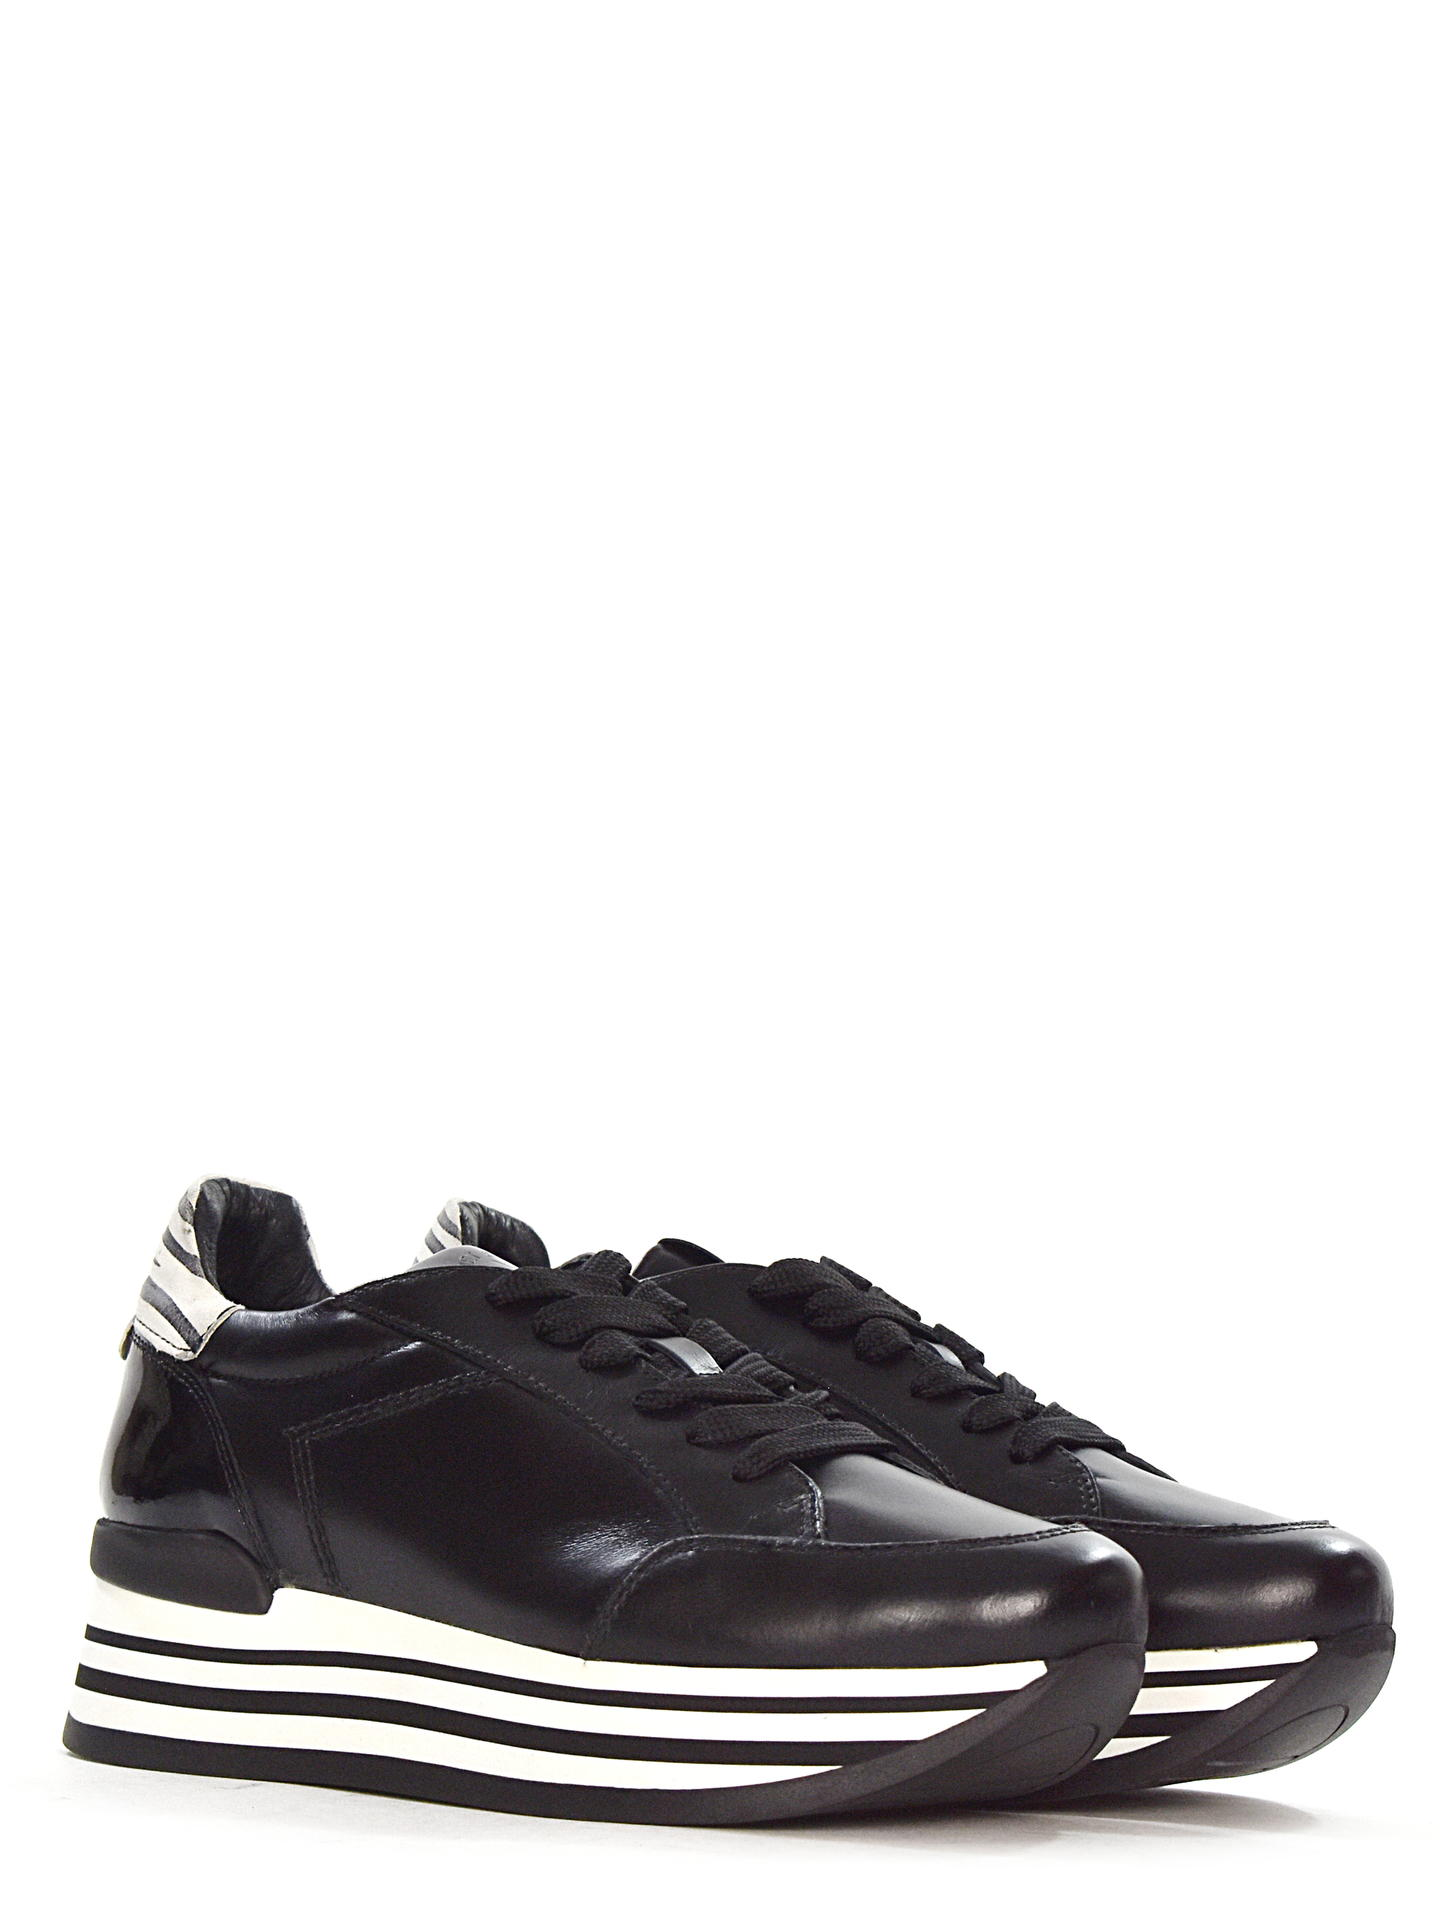 SNEAKERS JANET SPORT 44700A NERO